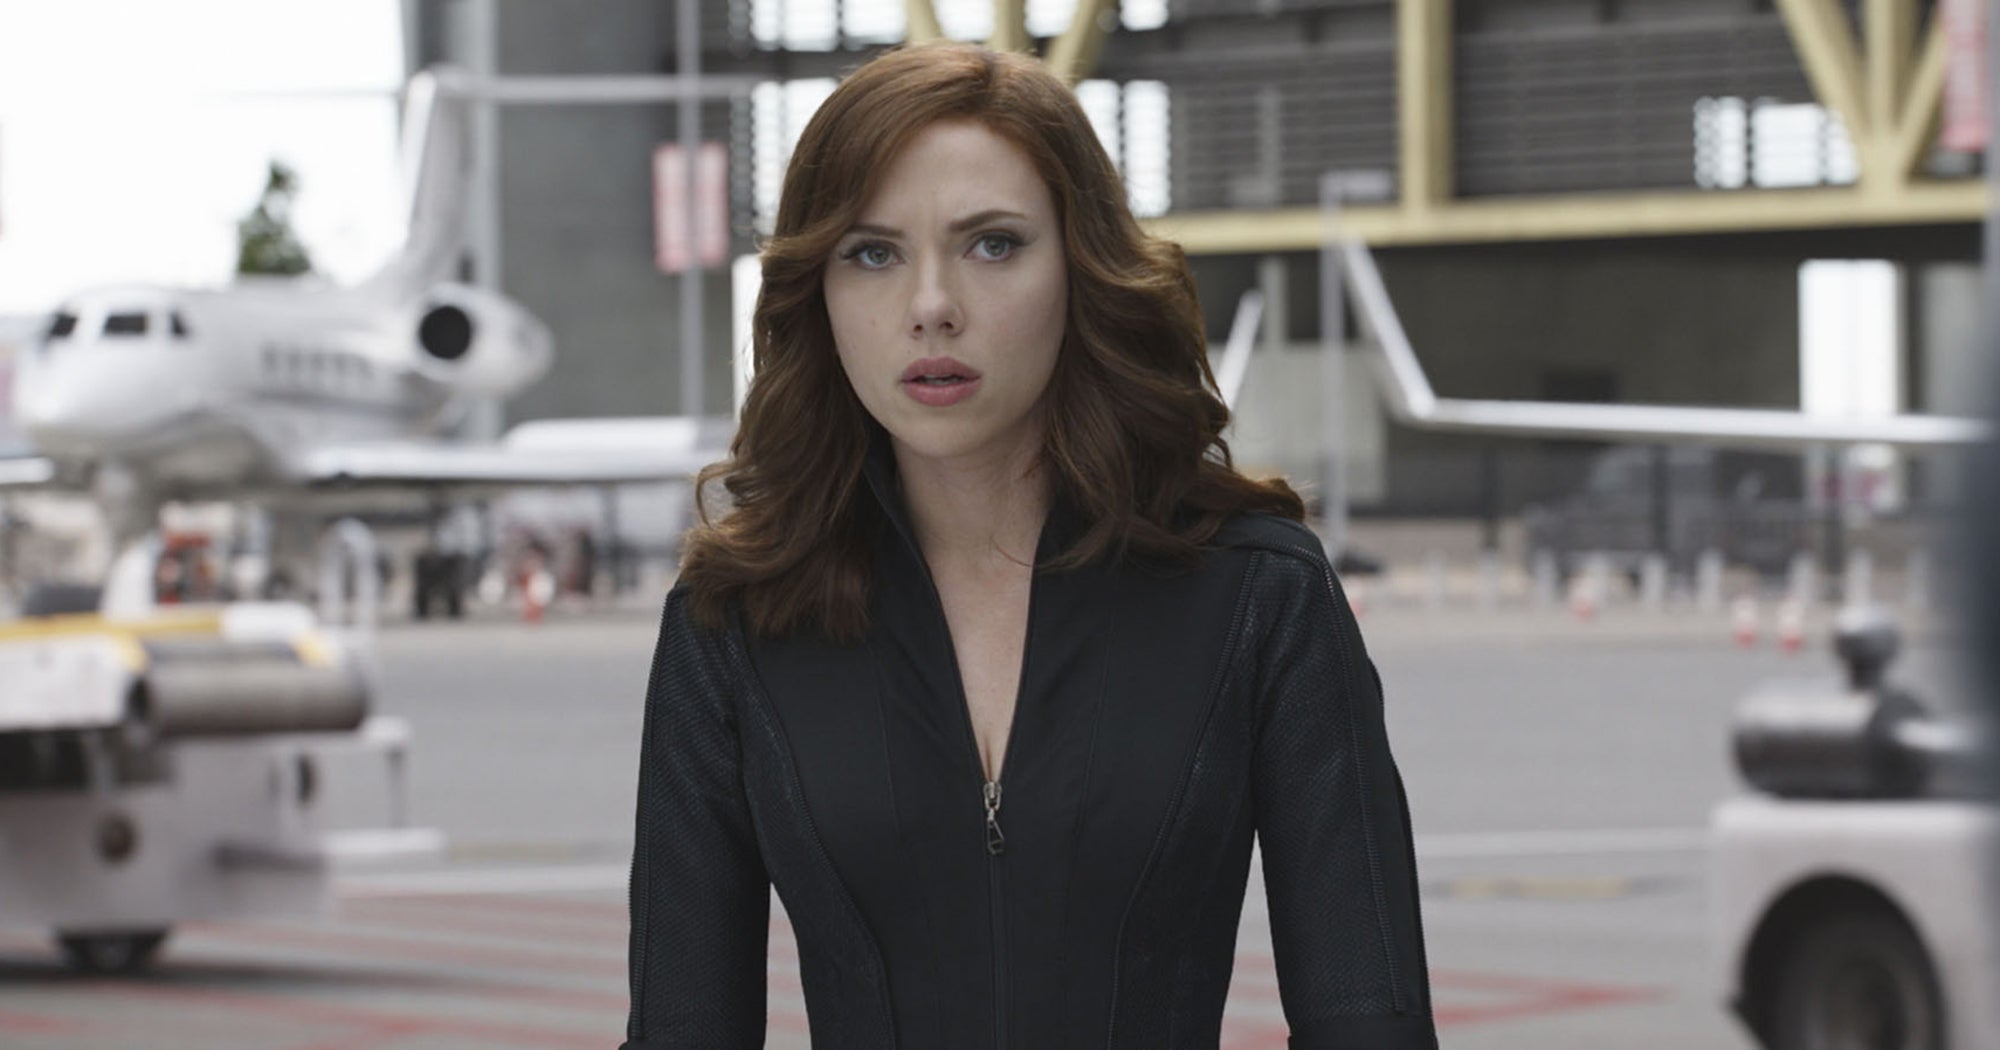 Looking Back, Scarlett Definitely Thinks Black Widow Was Overly Sexualized In The MCU